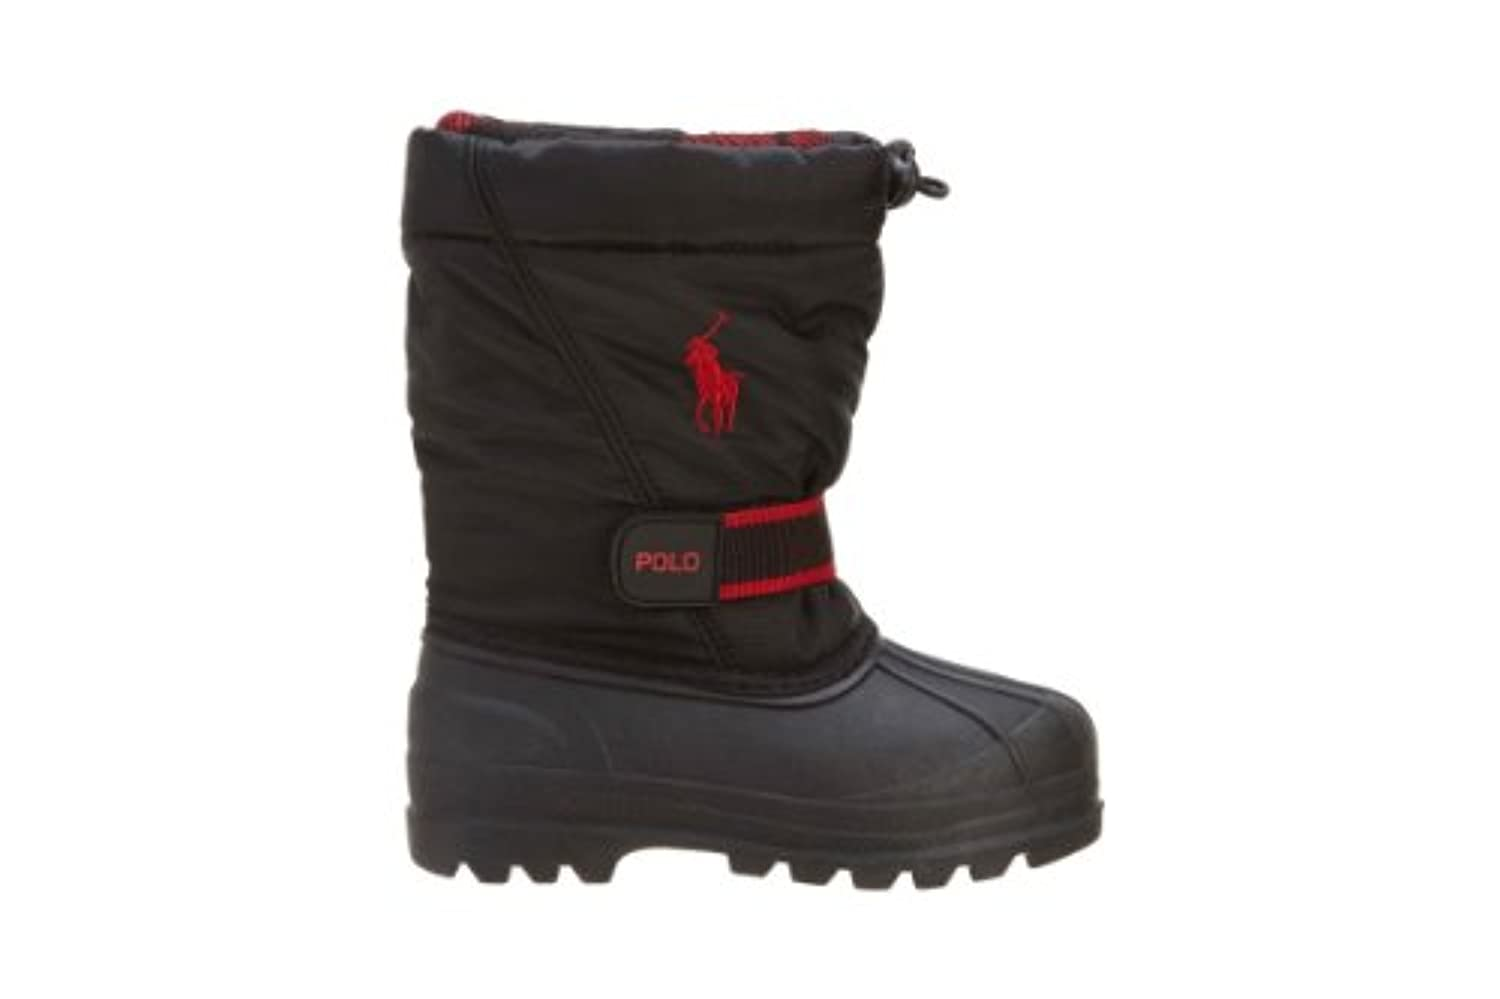 Polo Boots. Polo Ralph Lauren boots are the ideal choice for comfortable salestopp1se.gq them in any season. They work with casual ensembles as well as dress and business attire.